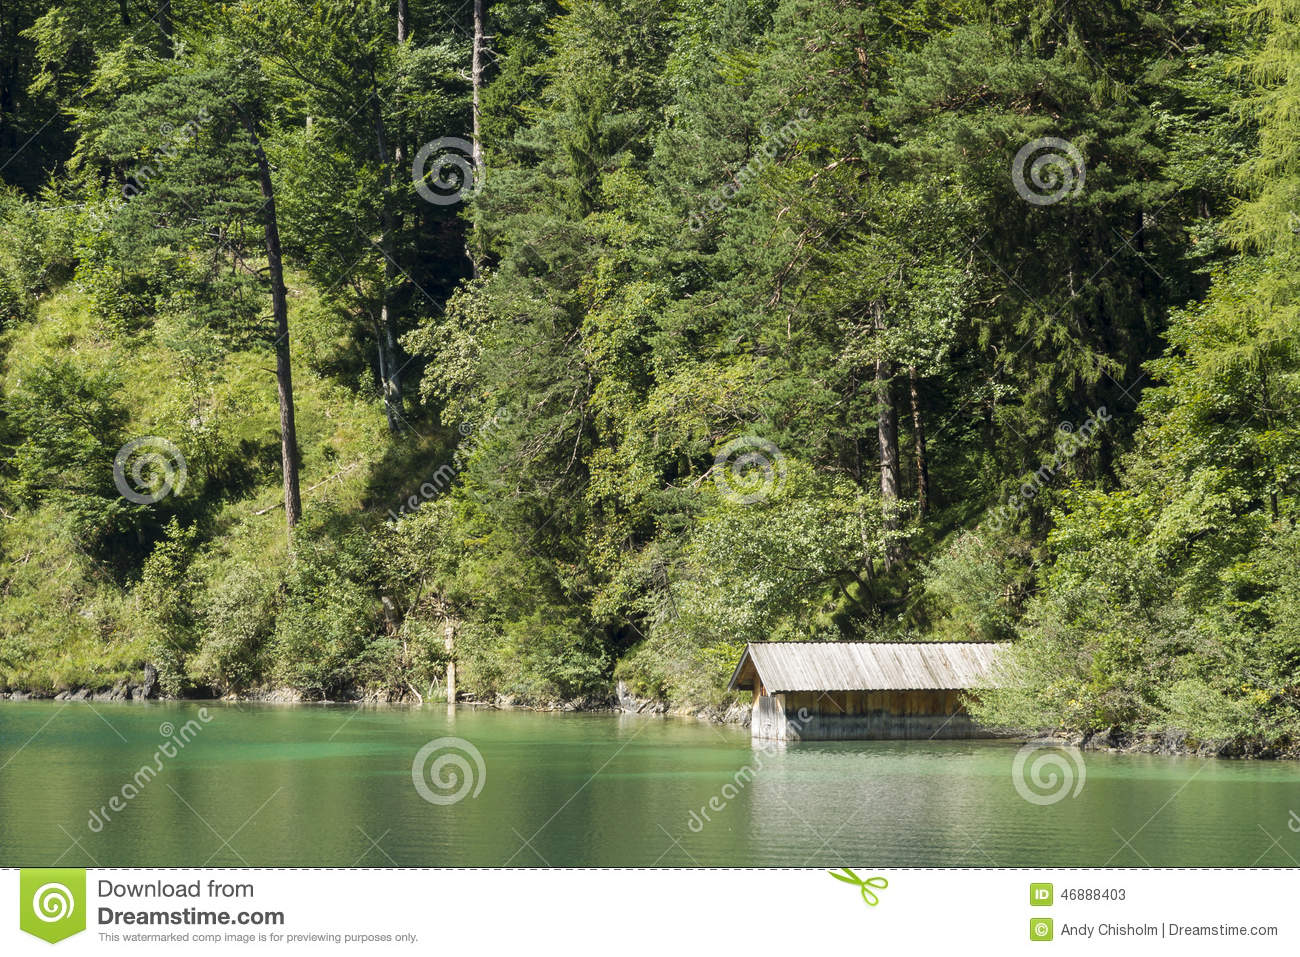 Green Alpsee Lake With Boating Shed And Trees, Germany. Stock.